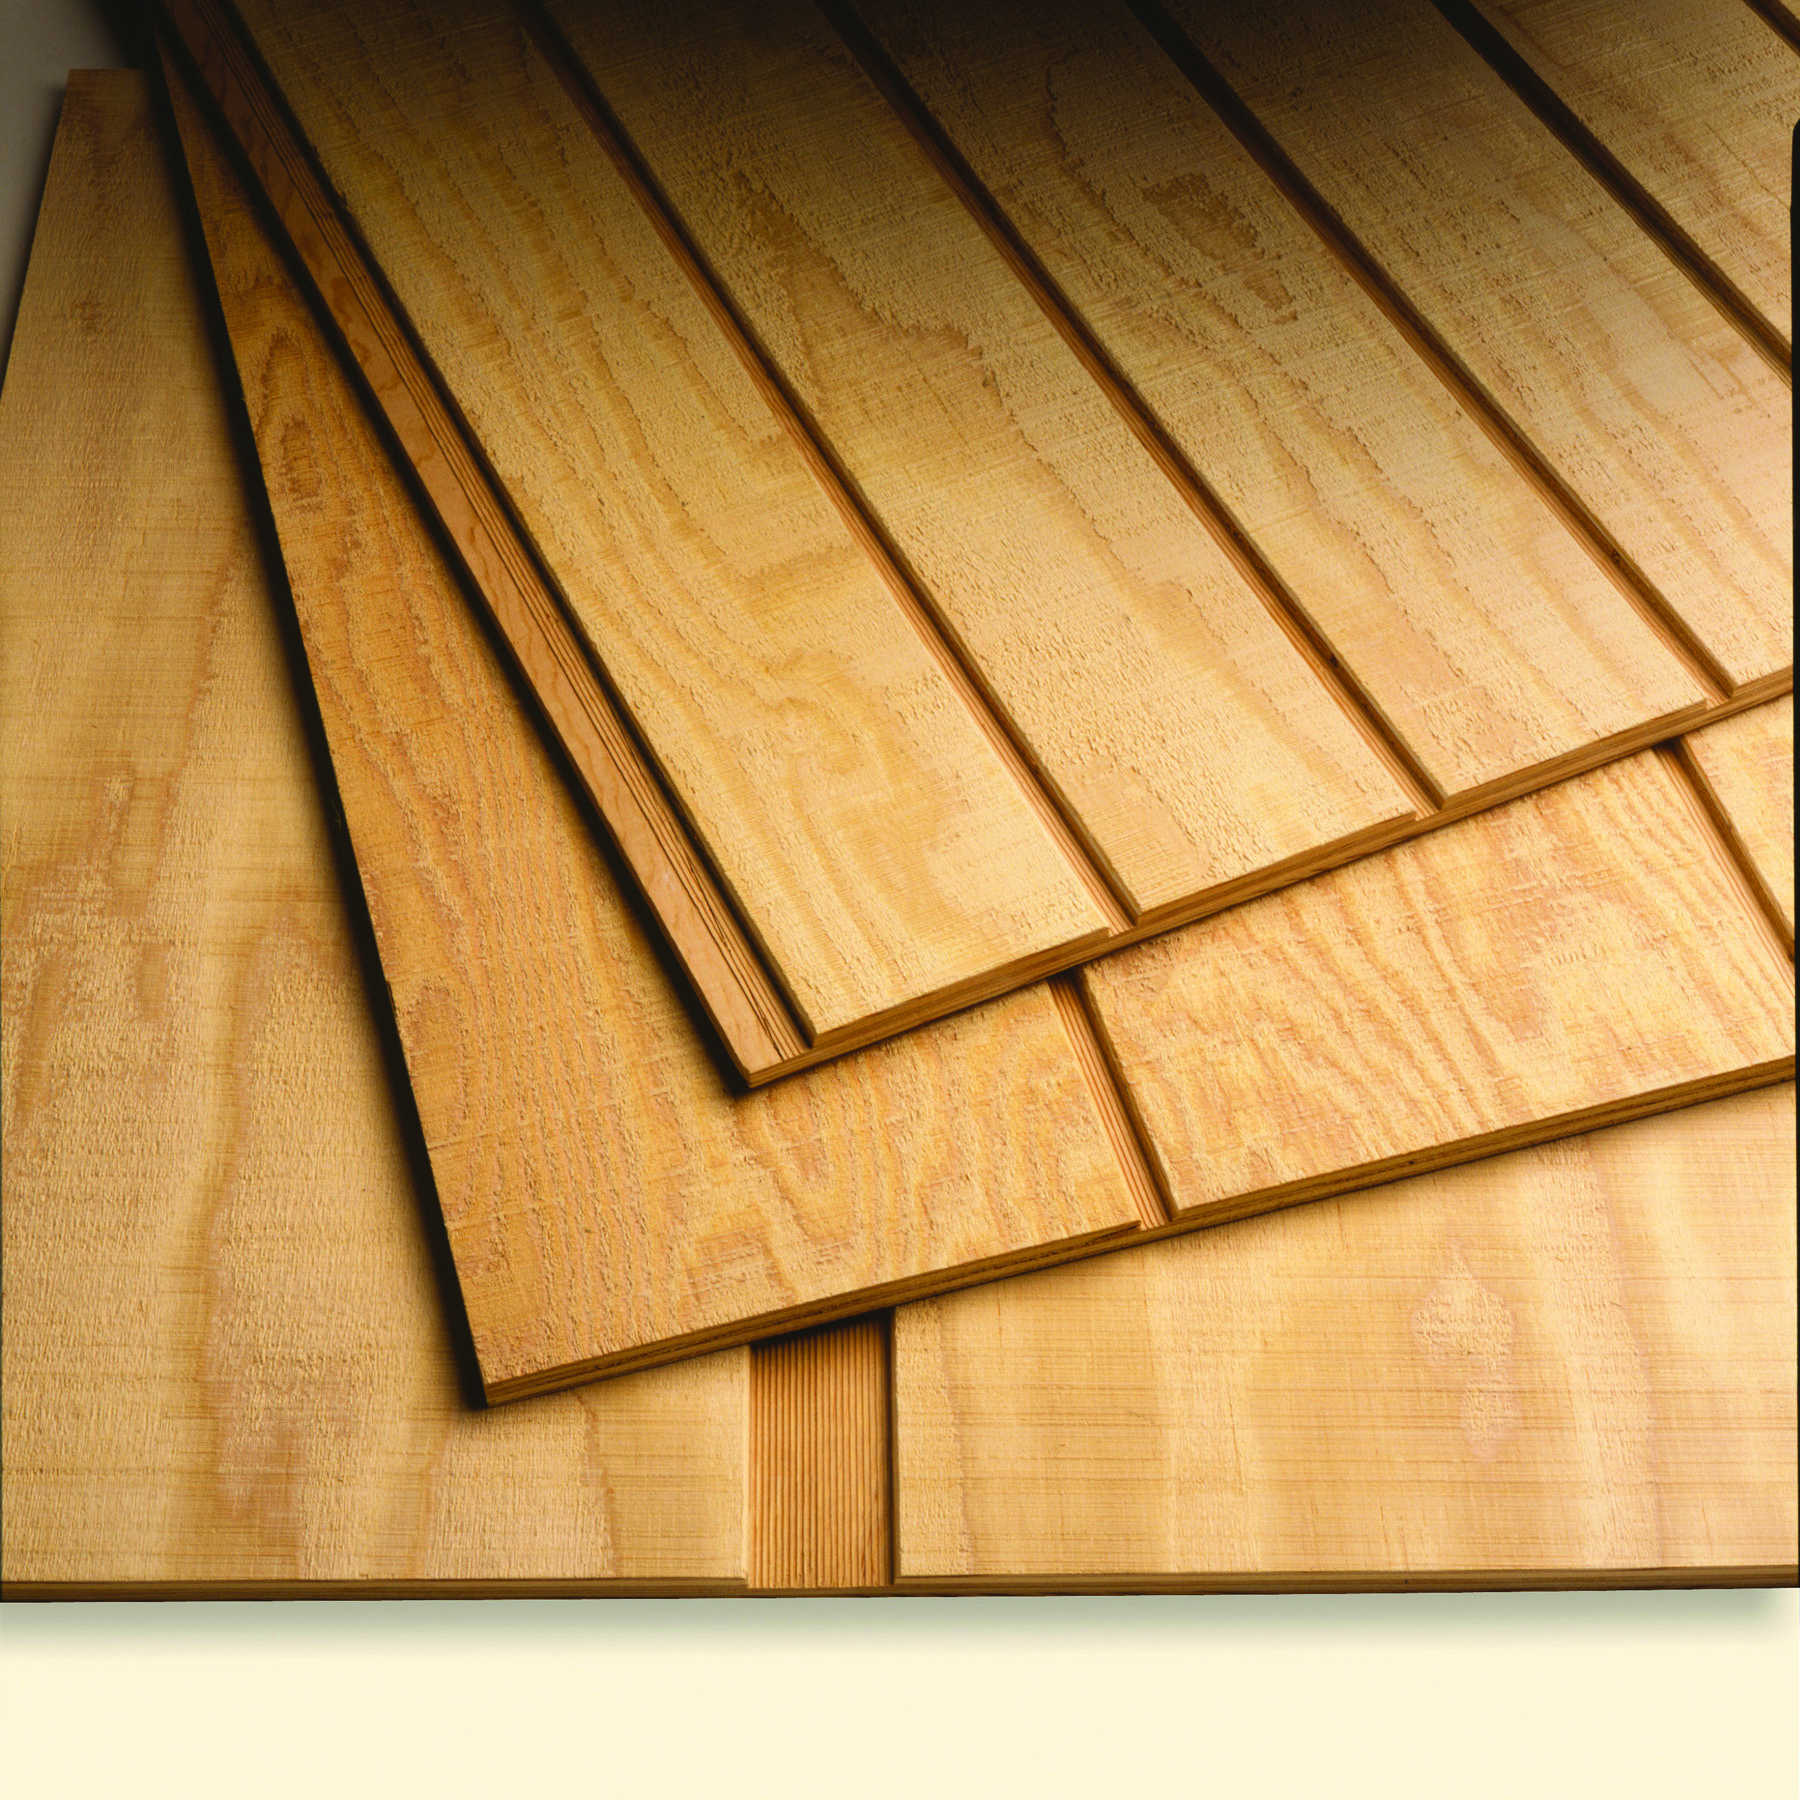 Douglas fir plywood siding weekes forest products for Exterior sheathing options